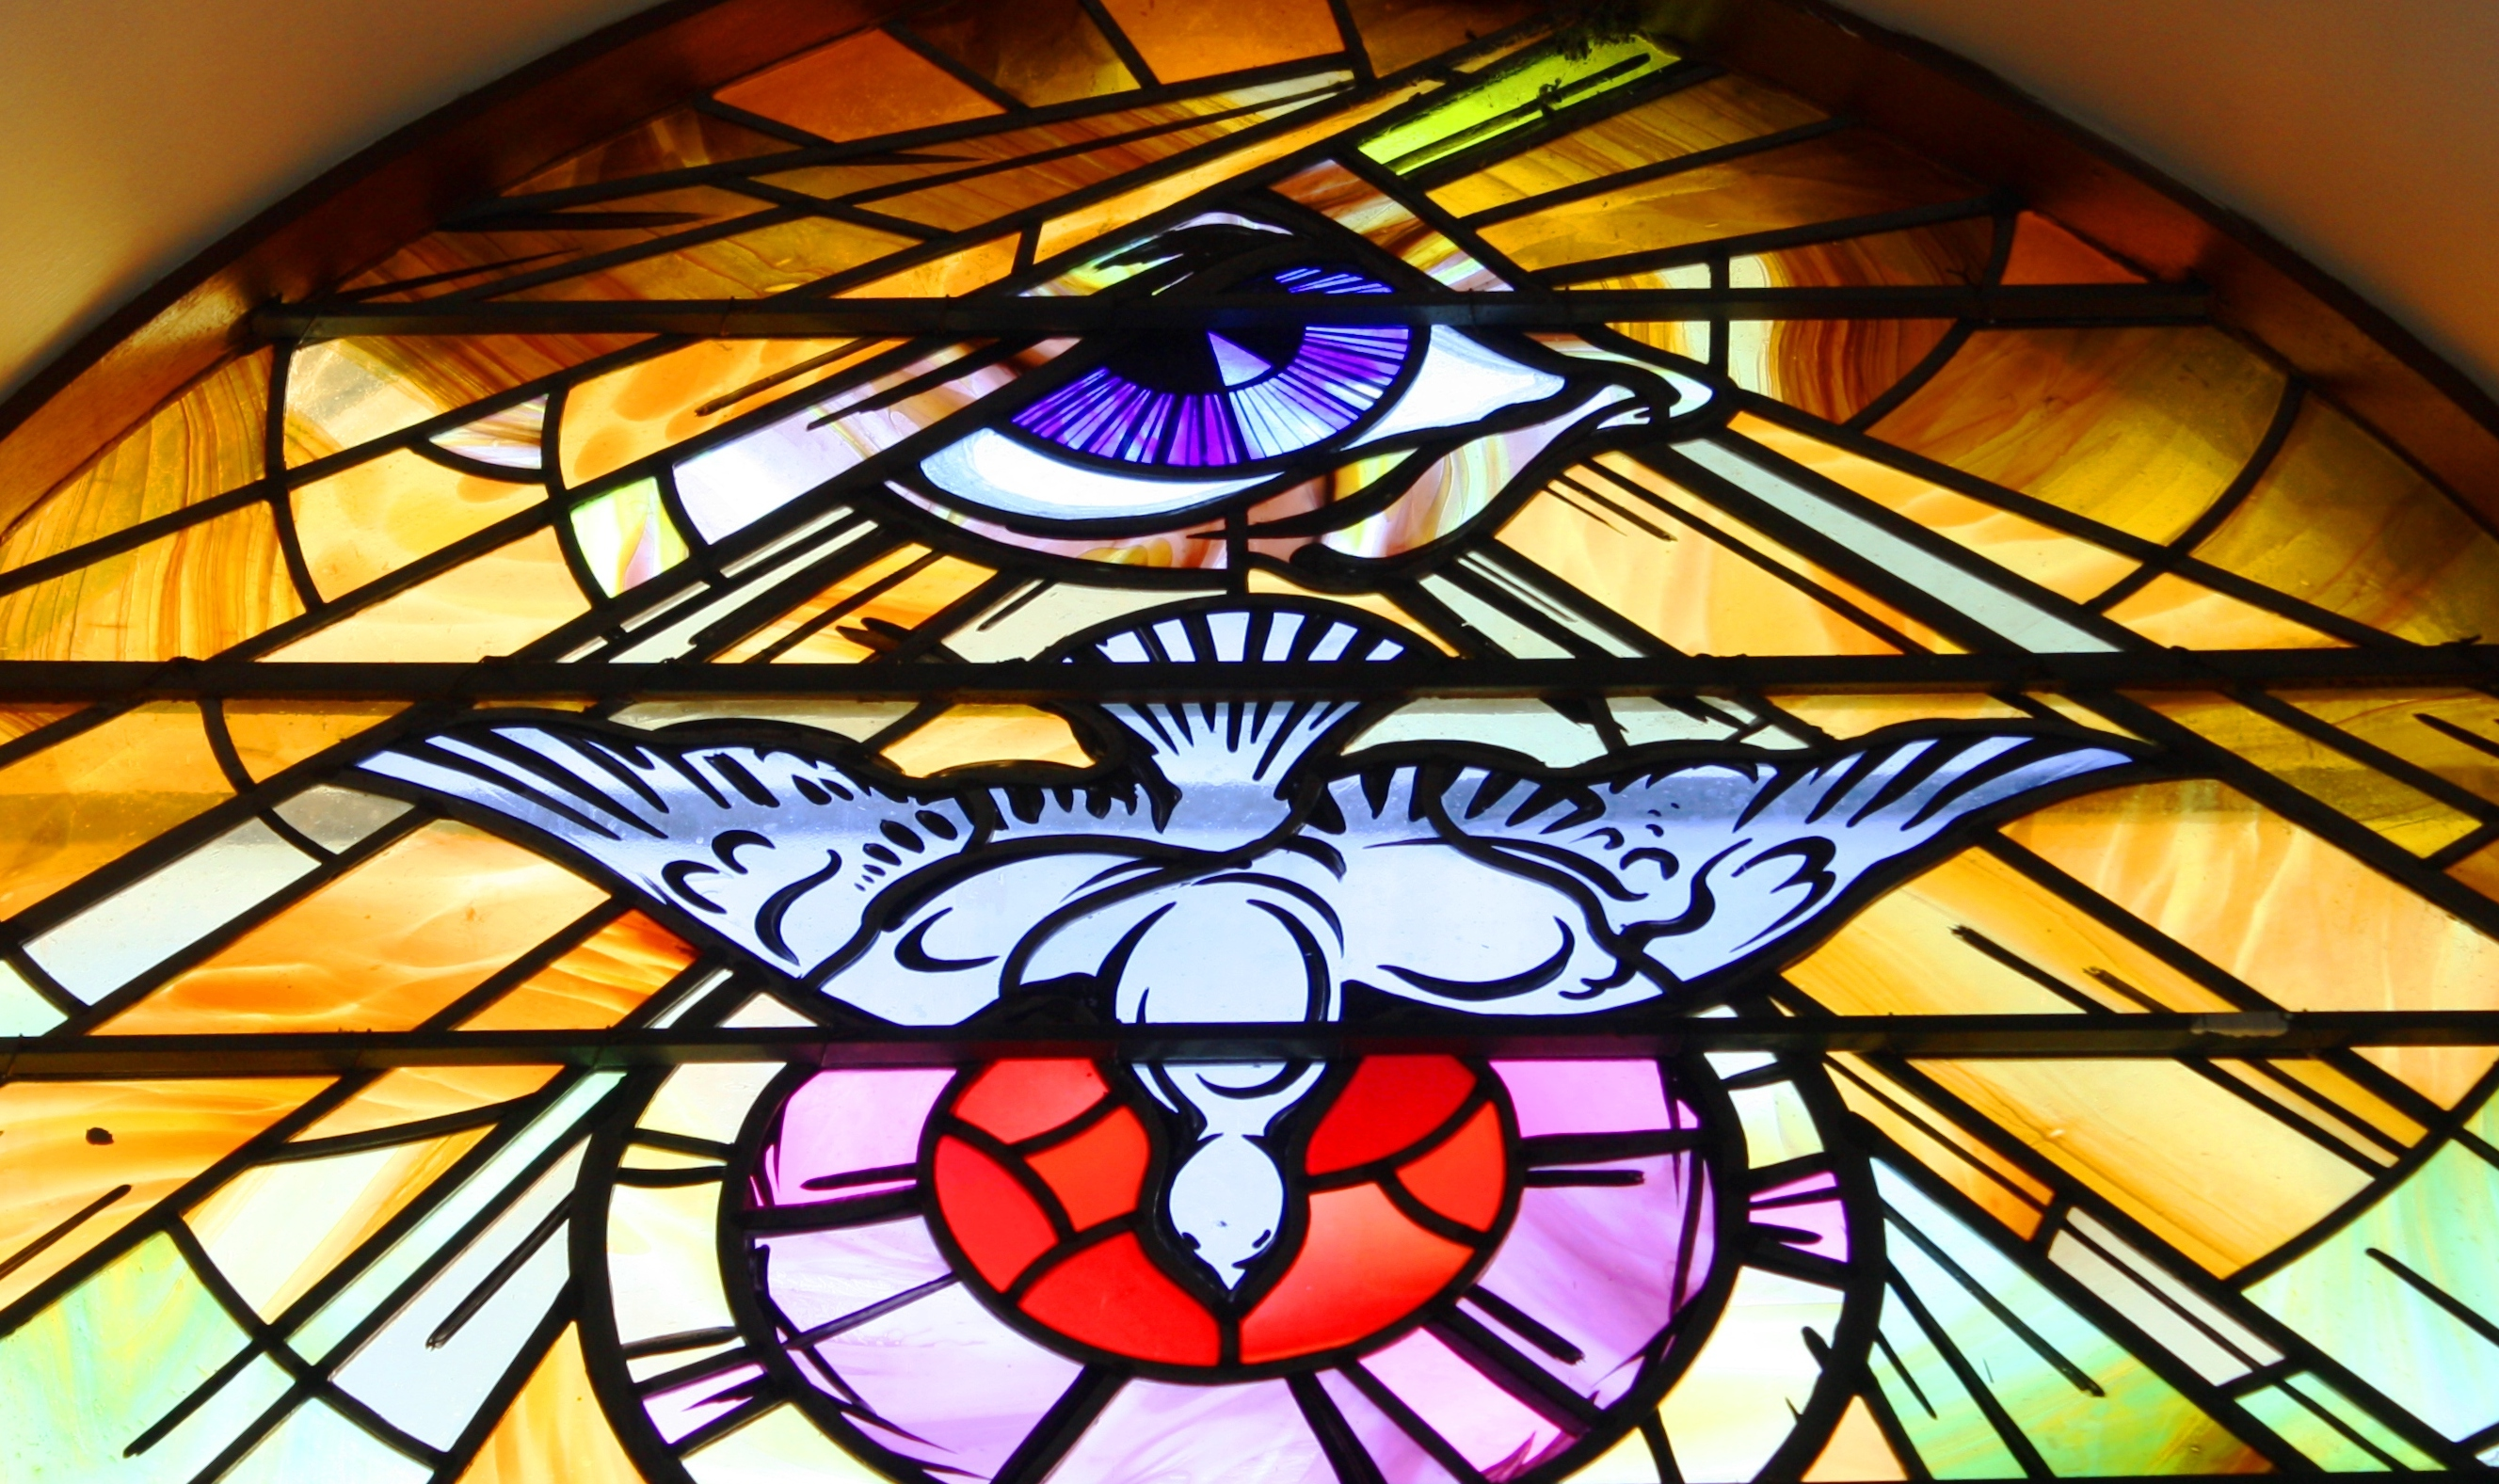 file:stained glass, holy family church, teconnaught, september 2010